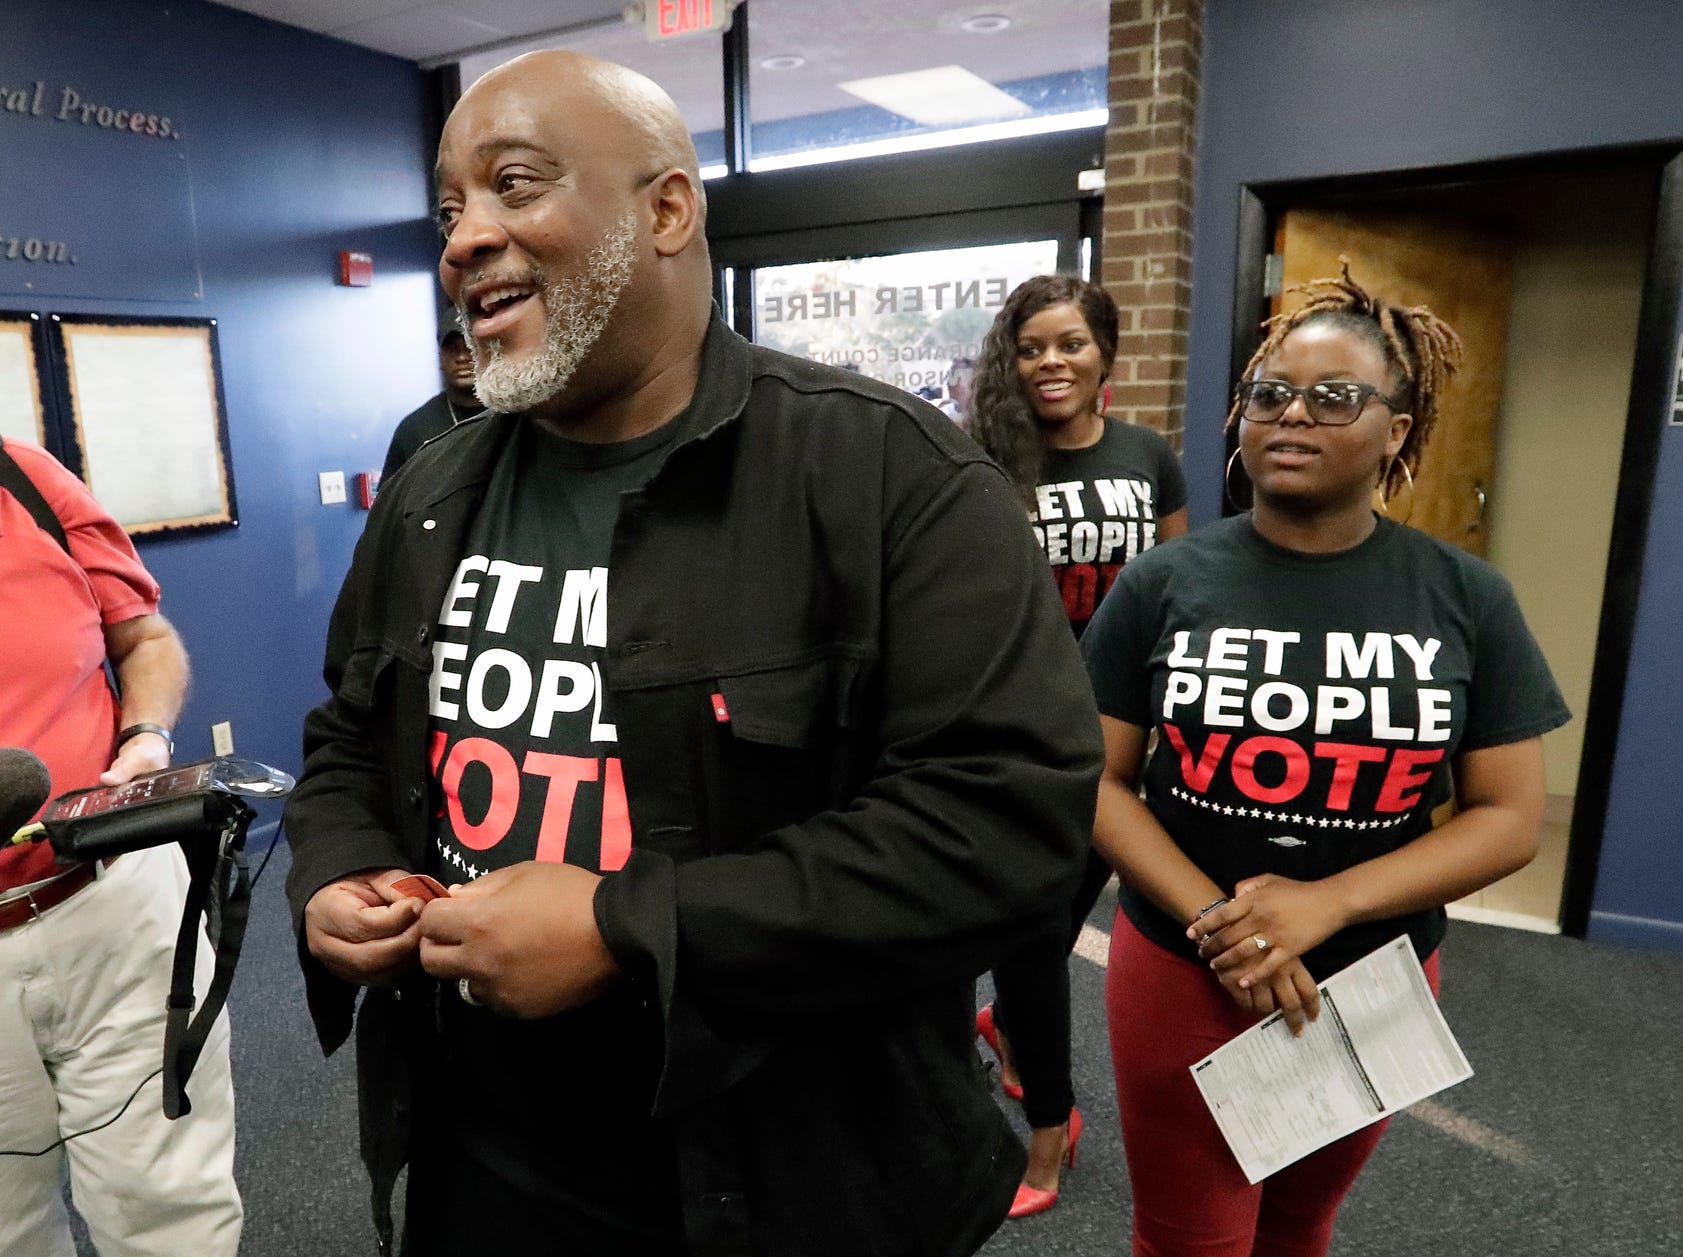 Former felon Desmond Meade and president of the Florida Rights Restoration Coalition, left, arrives with family members at the Supervisor of Elections office  in Orlando, Fla., to register to vote, Tuesday.